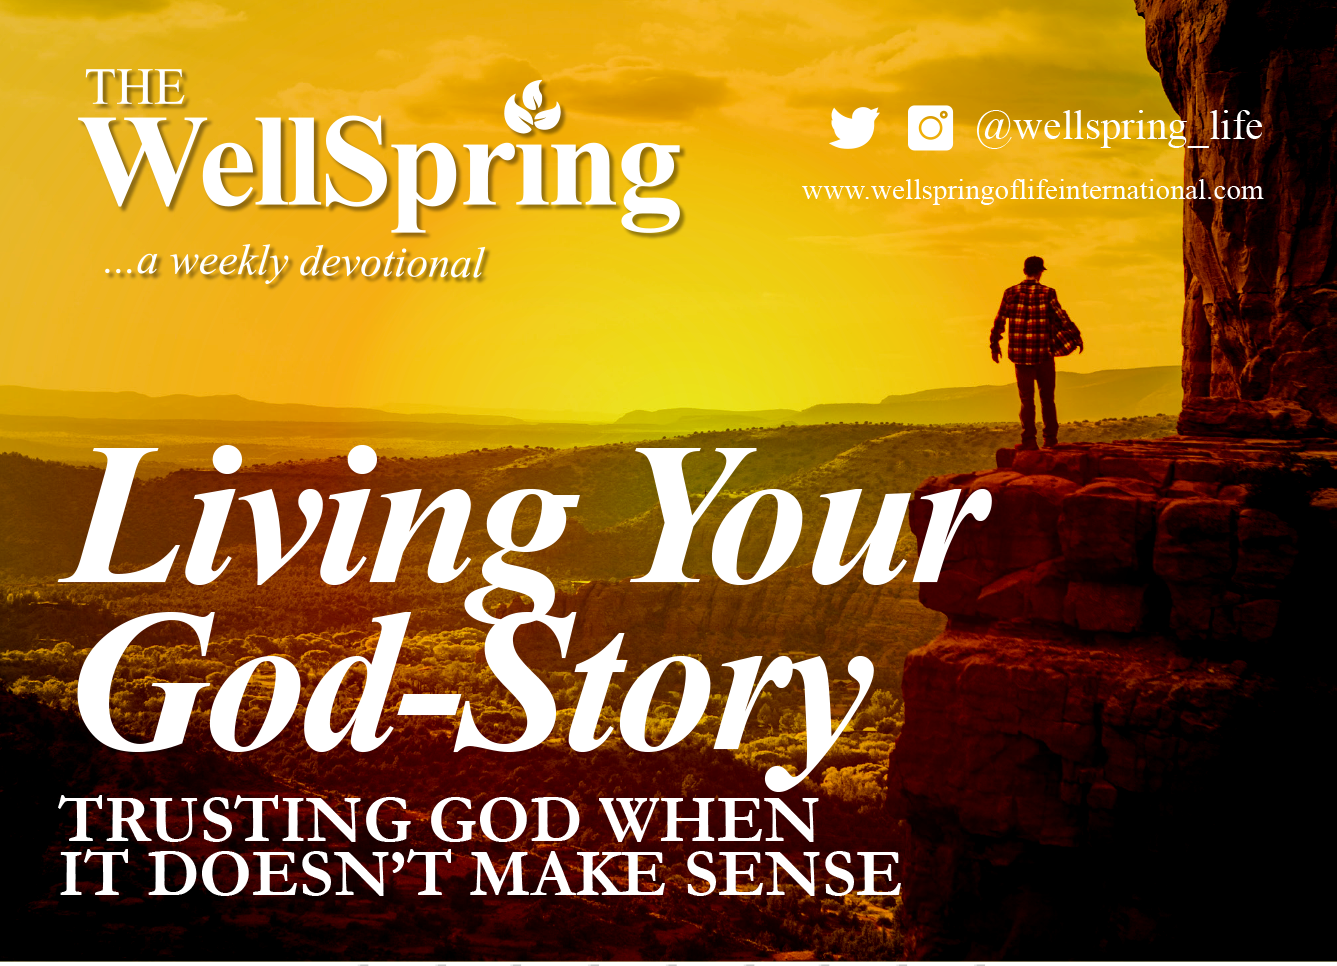 Living Your God-Story (Trusting God When it Doesn't Make Sense) post thumbnail